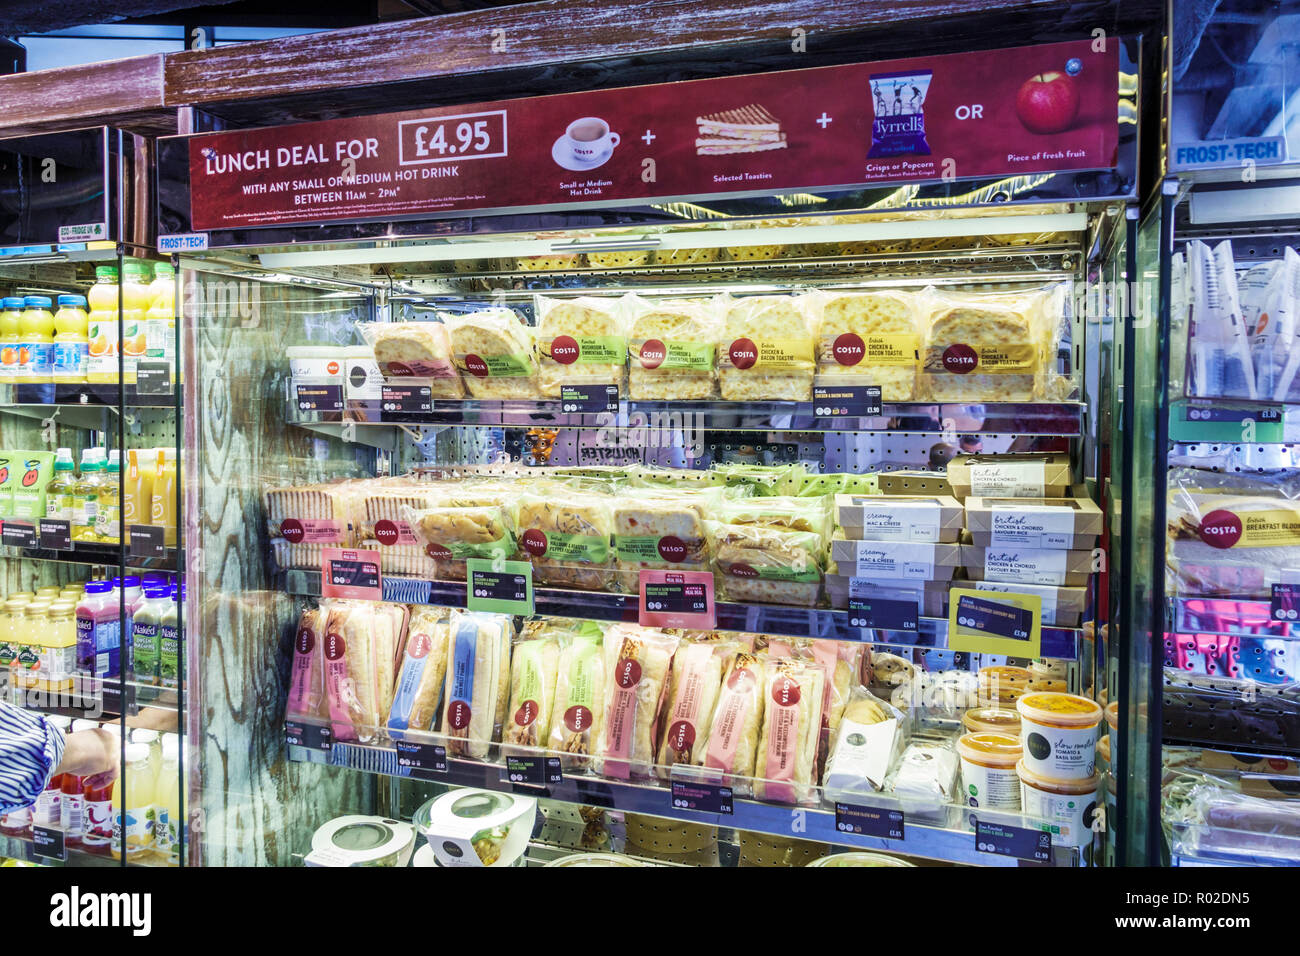 London England United Kingdom Great Britain Soho Costa Coffee coffeehouse cafe lunch deal sandwich display sale - Stock Image